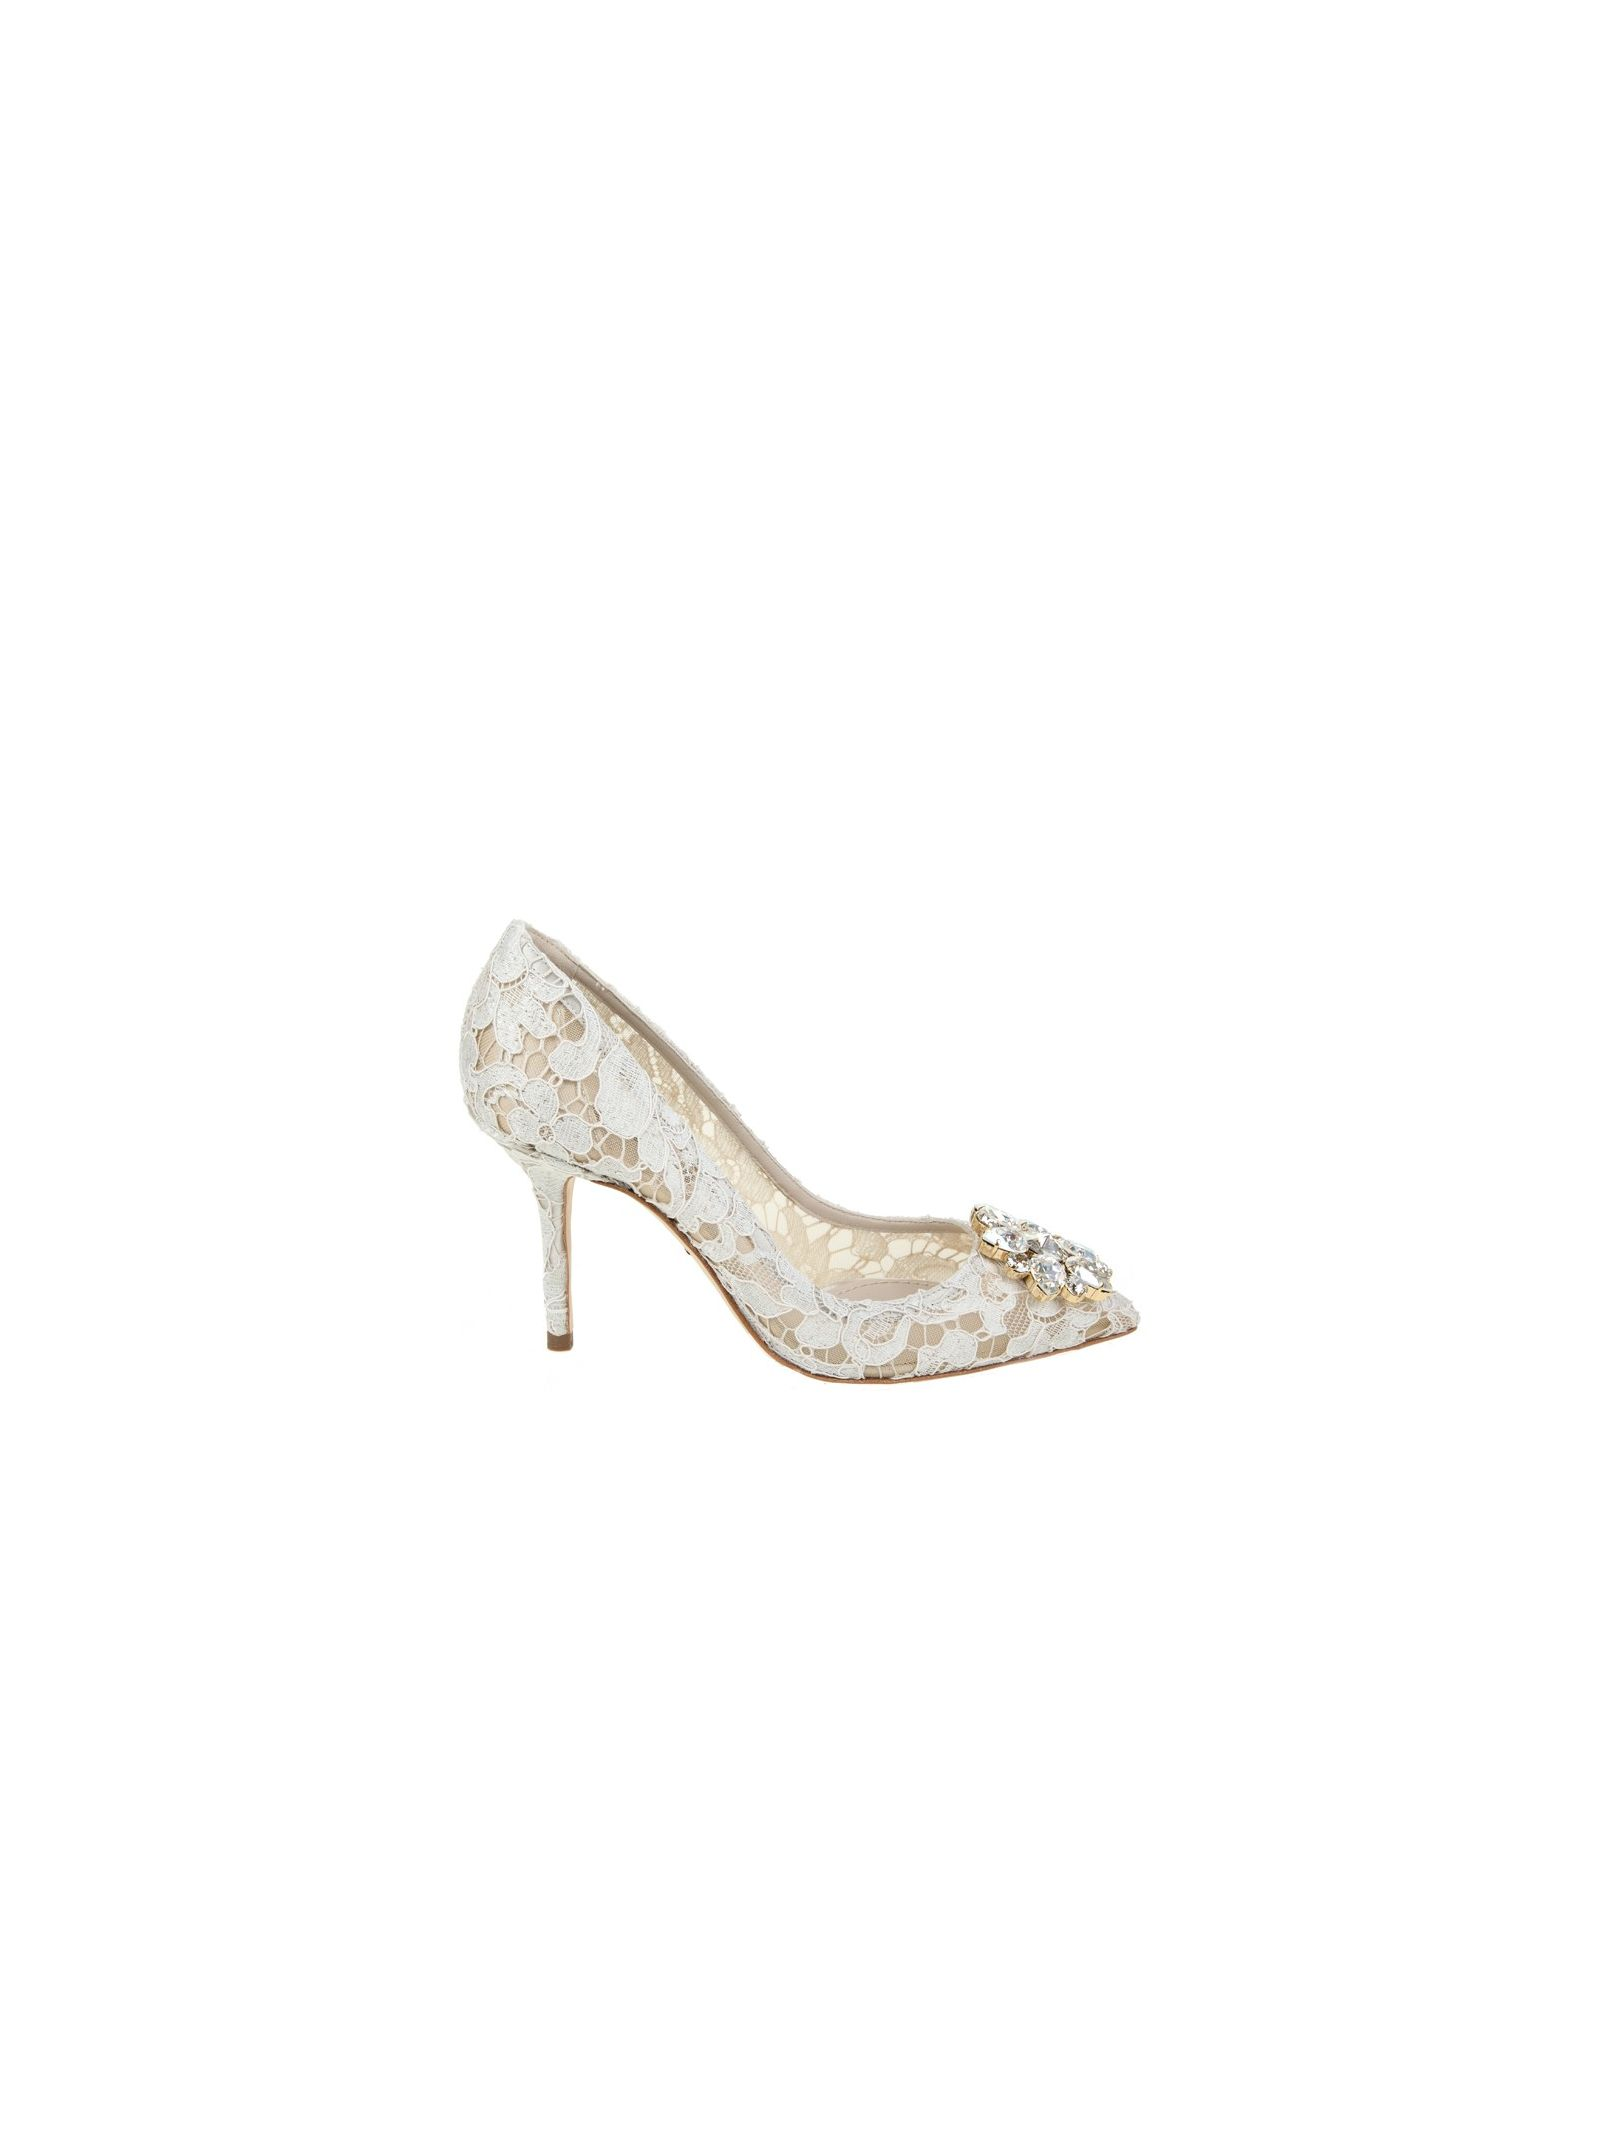 Dolce & Gabbana Decolletè Bellucci Ice Lace With Application In Crystals